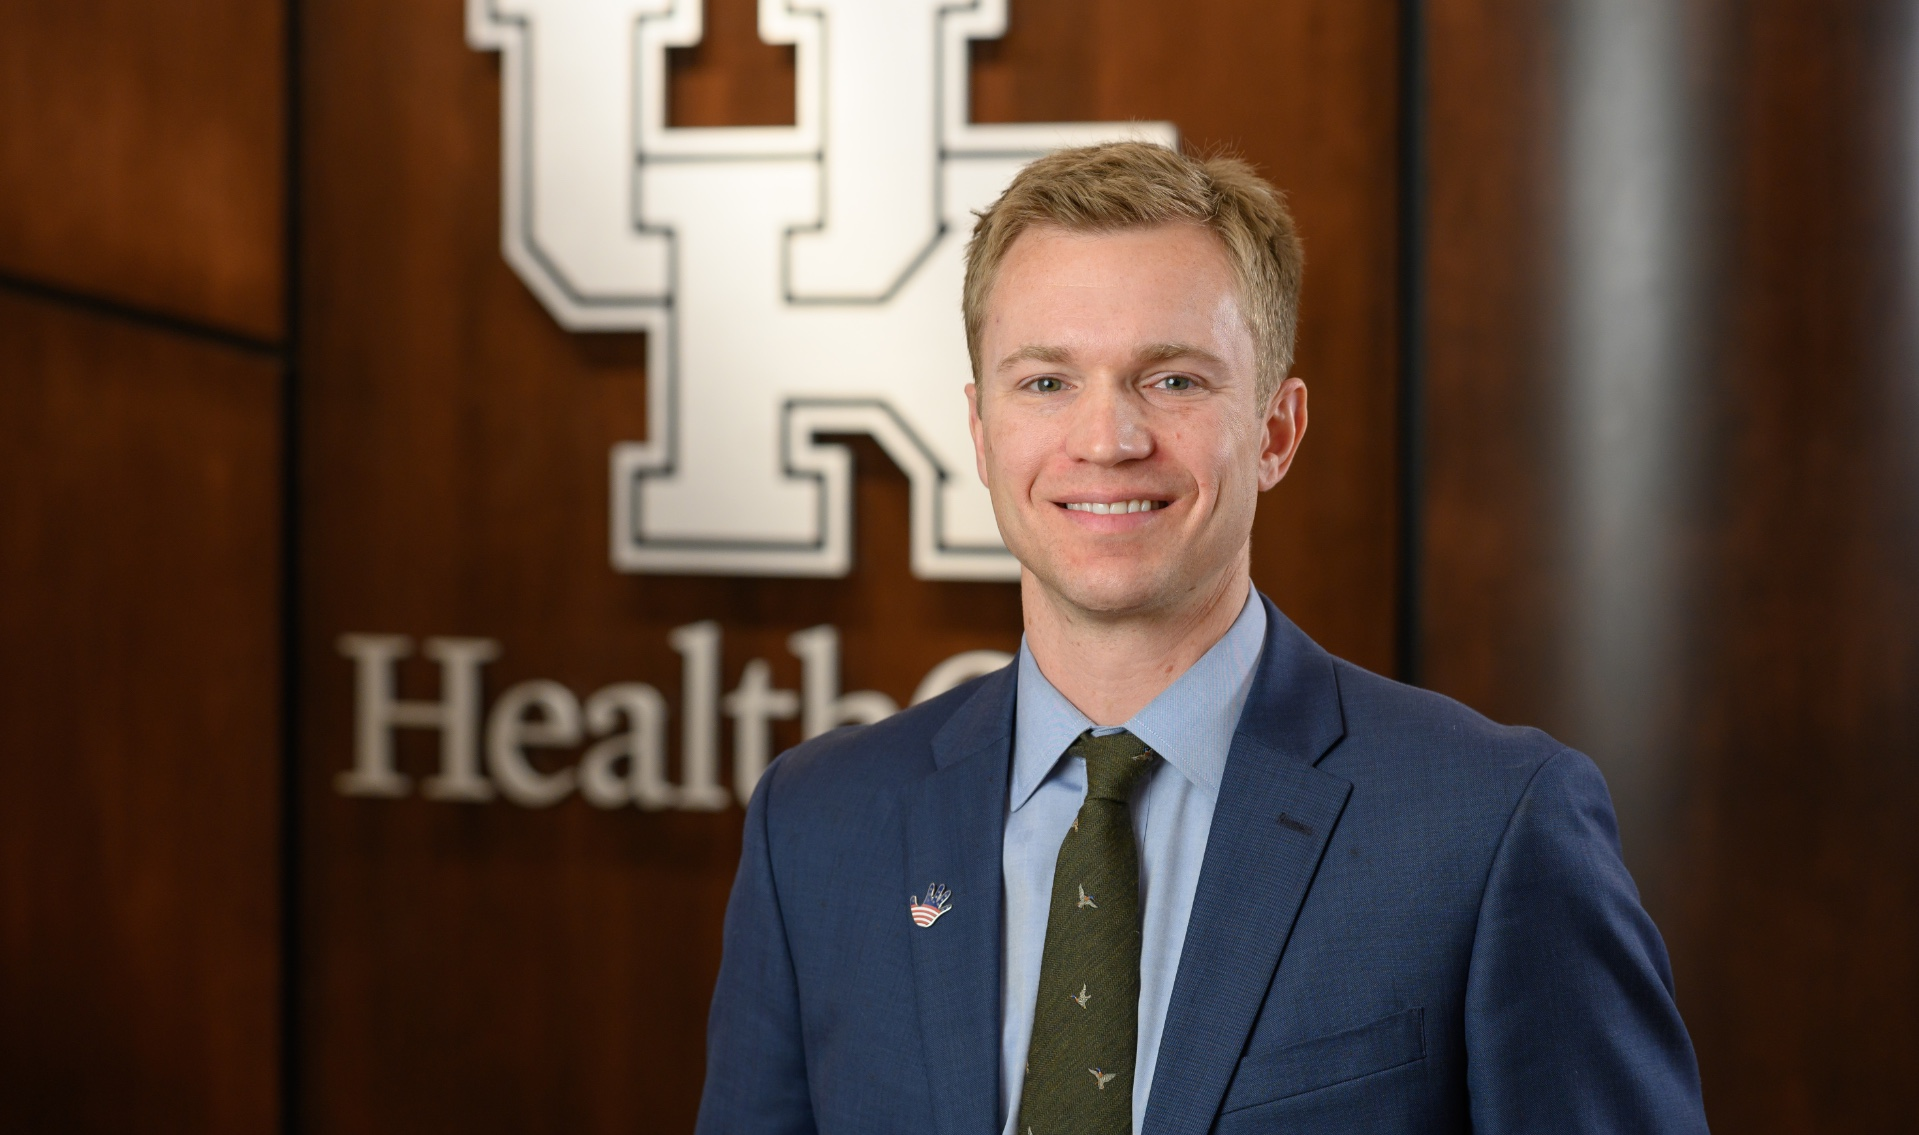 Dr. Kluemper, an adult white man with blonde hair, smiles in front of a UK HealthCare logo. He is wearing a navy suit and a green tie.